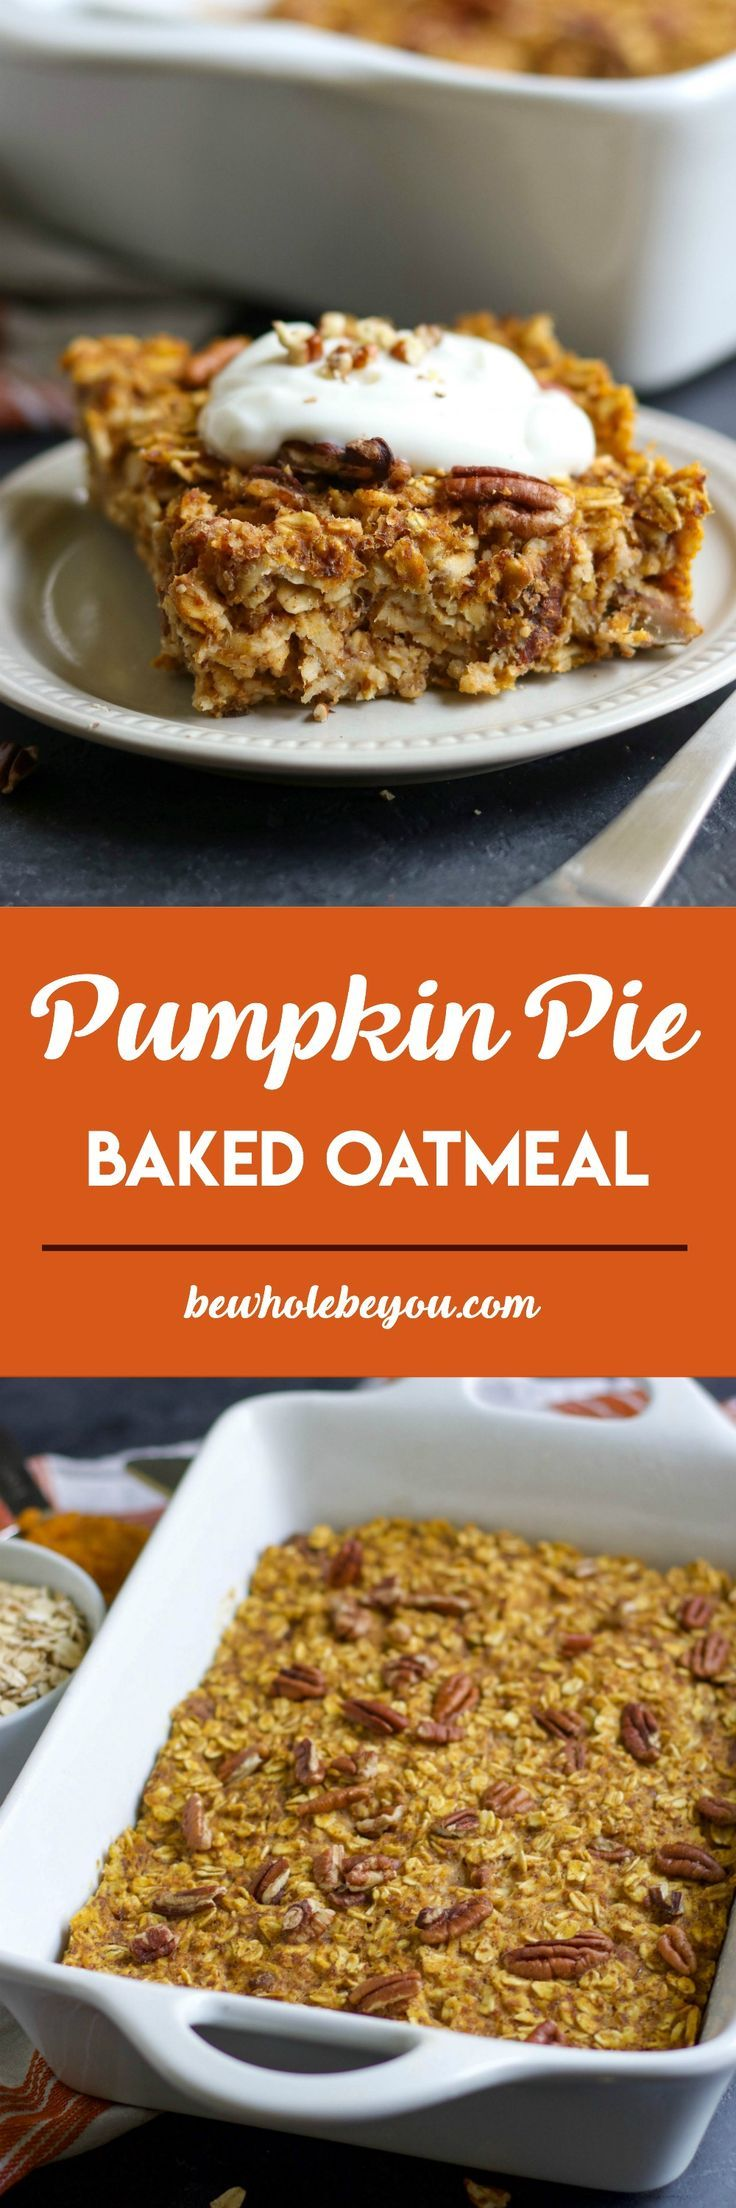 Pumpkin Pie Baked Oatmeal. Have pumpkin pie for breakfast too with this hearty baked oatmeal recipe. Maple sweetened and with just the right spice. Perfect for cozy fall breakfasts! bewholebeyou.com